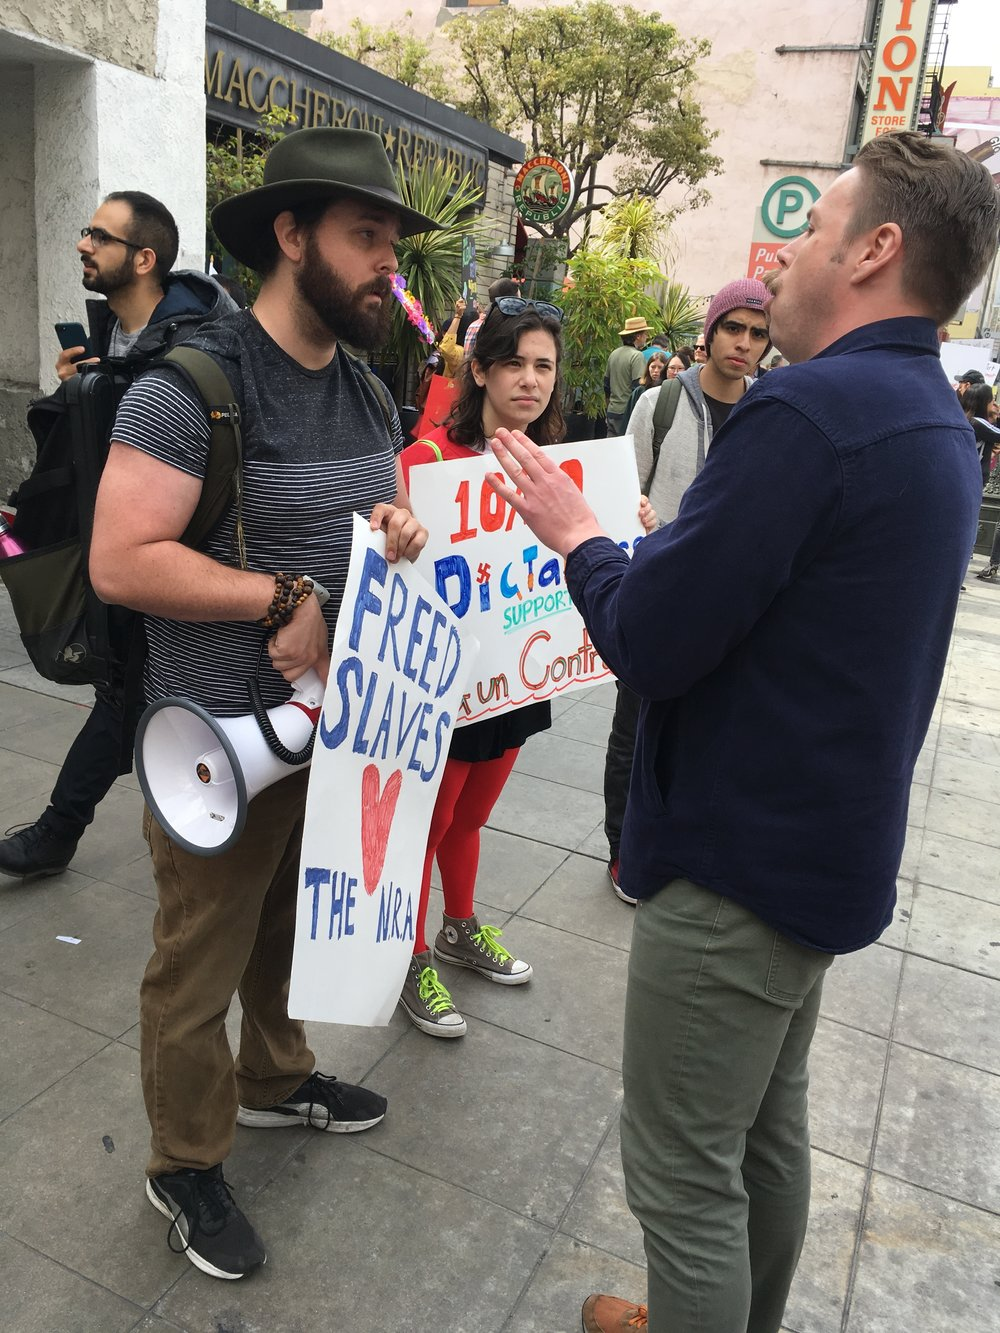 Santa Monica College student Ben Kolodny (left), with girlfriend Liberty Fuchs, debating with Spencer Thun about gun control. Kolodny didn't join the corner of counter-protestors at the March For Our Lives protest on March 24, 2018, in Los Angeles, California. Julie Dole/Corsair Contributor Photo).